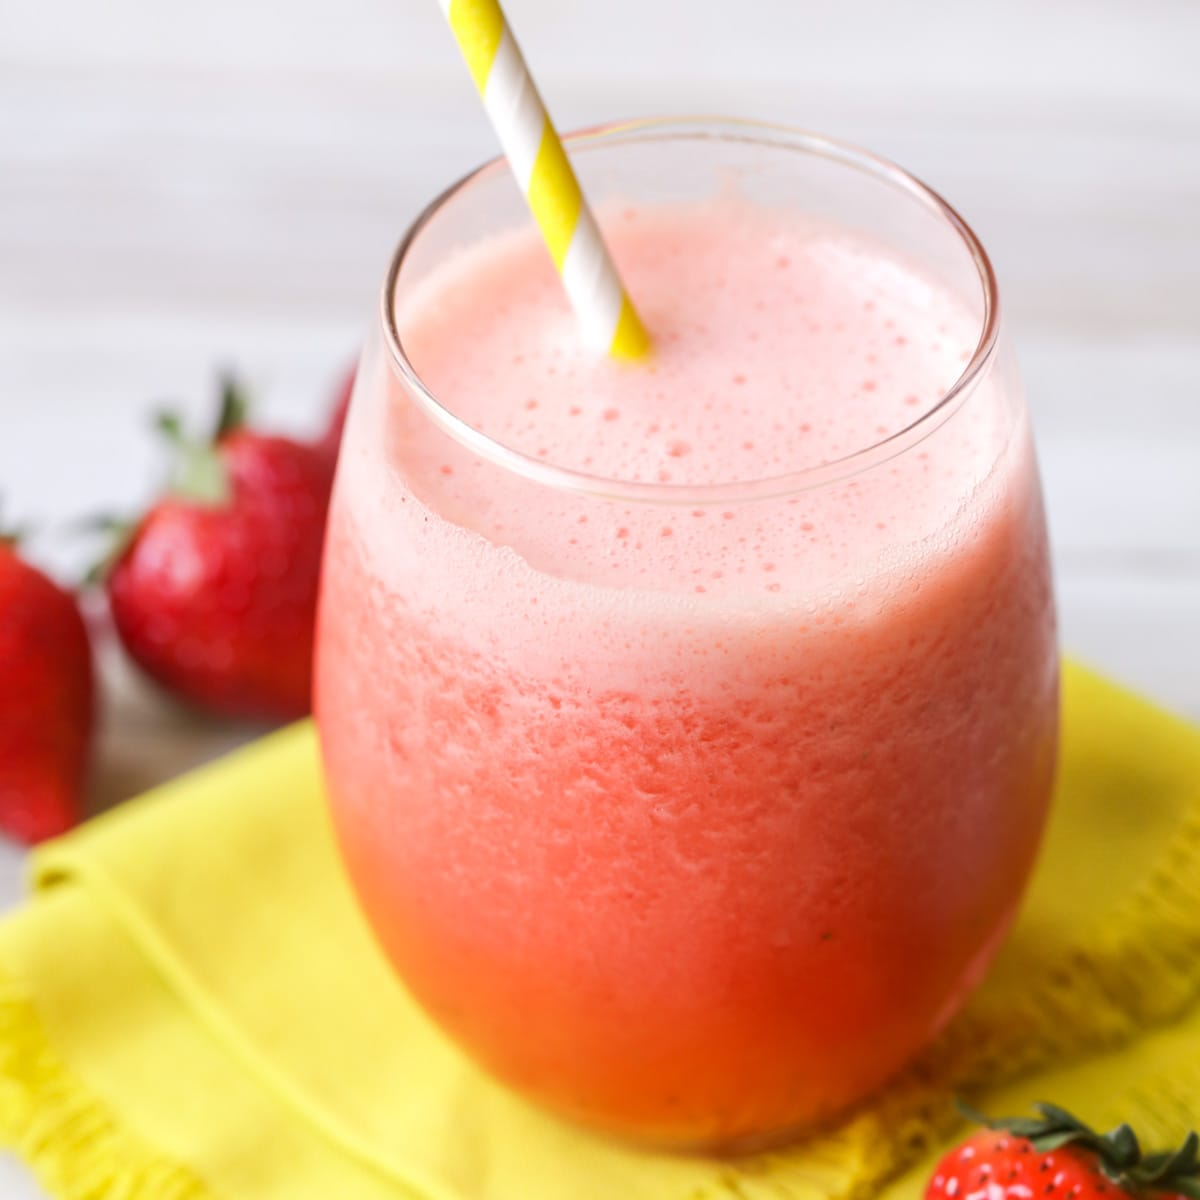 Frozen strawberry lemonade in a glass with a straw